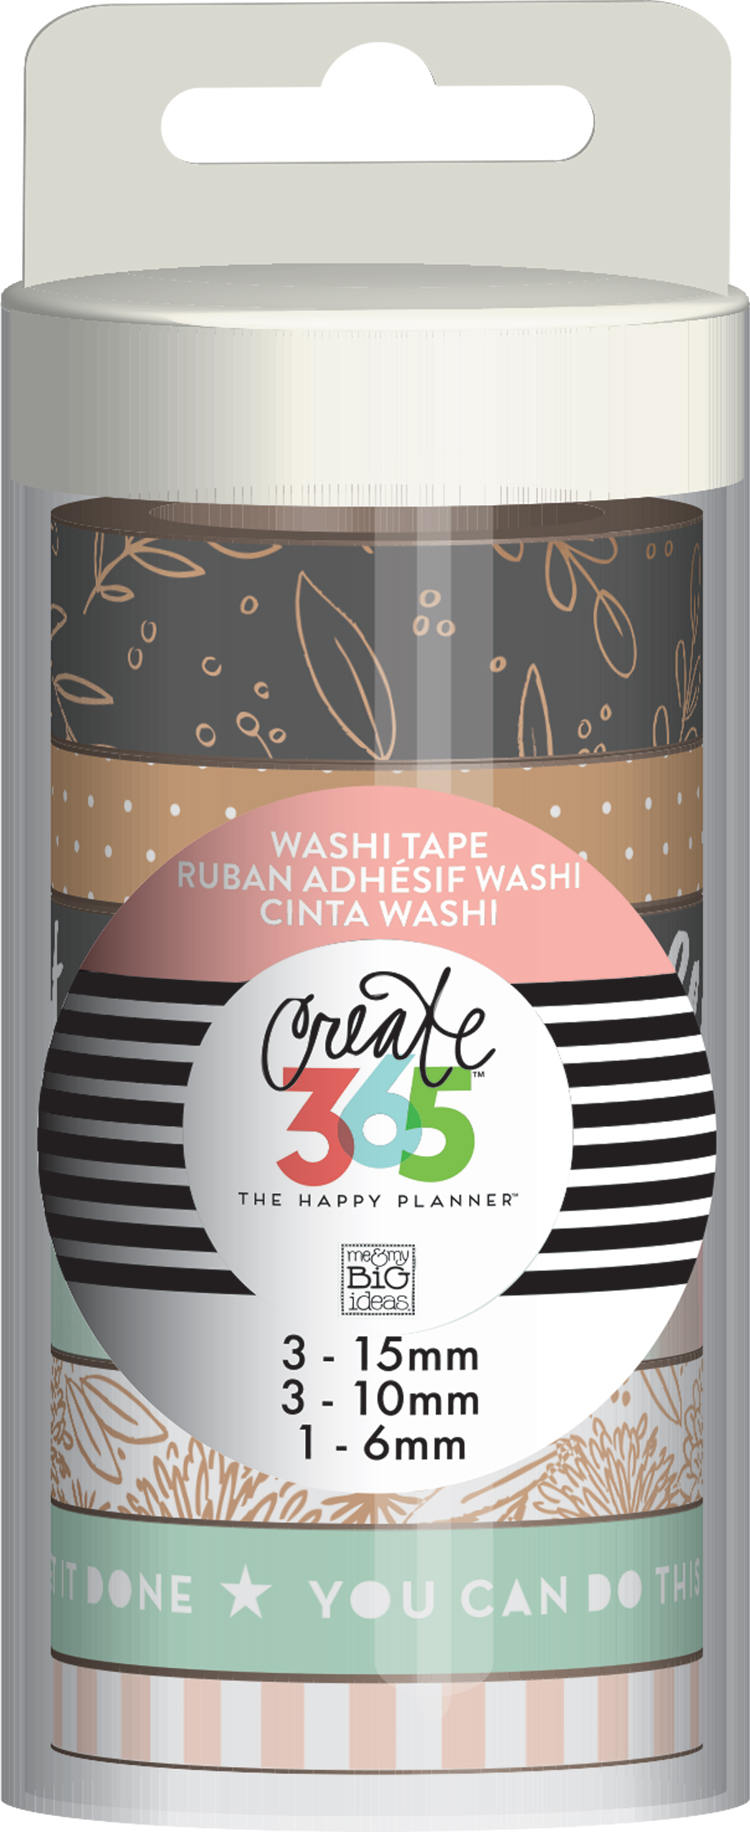 'Rose Gold' Washi Tape for The Happy Planner | me & my BIG ideas.jpg